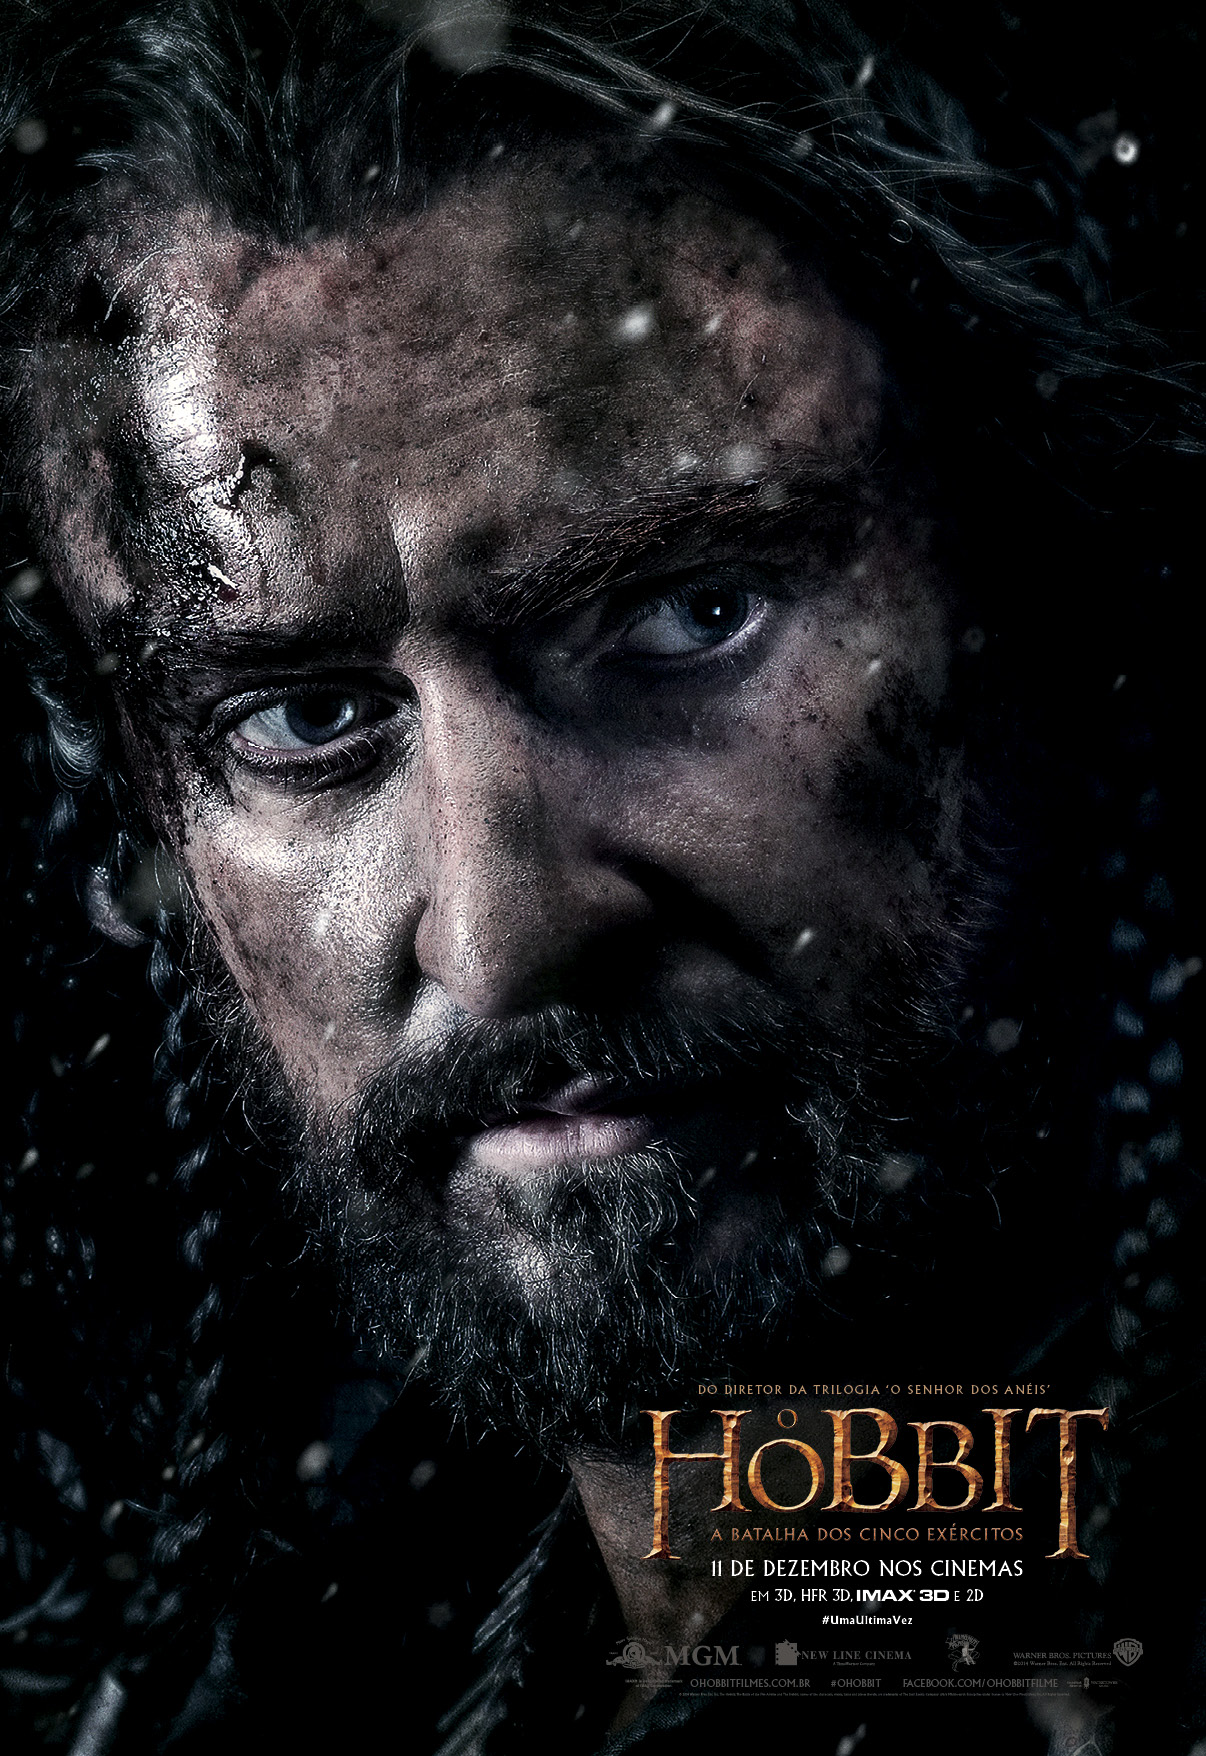 309732id5_TheHobbit_TBOTFA_Character_Thorin_48inW_x_70inH